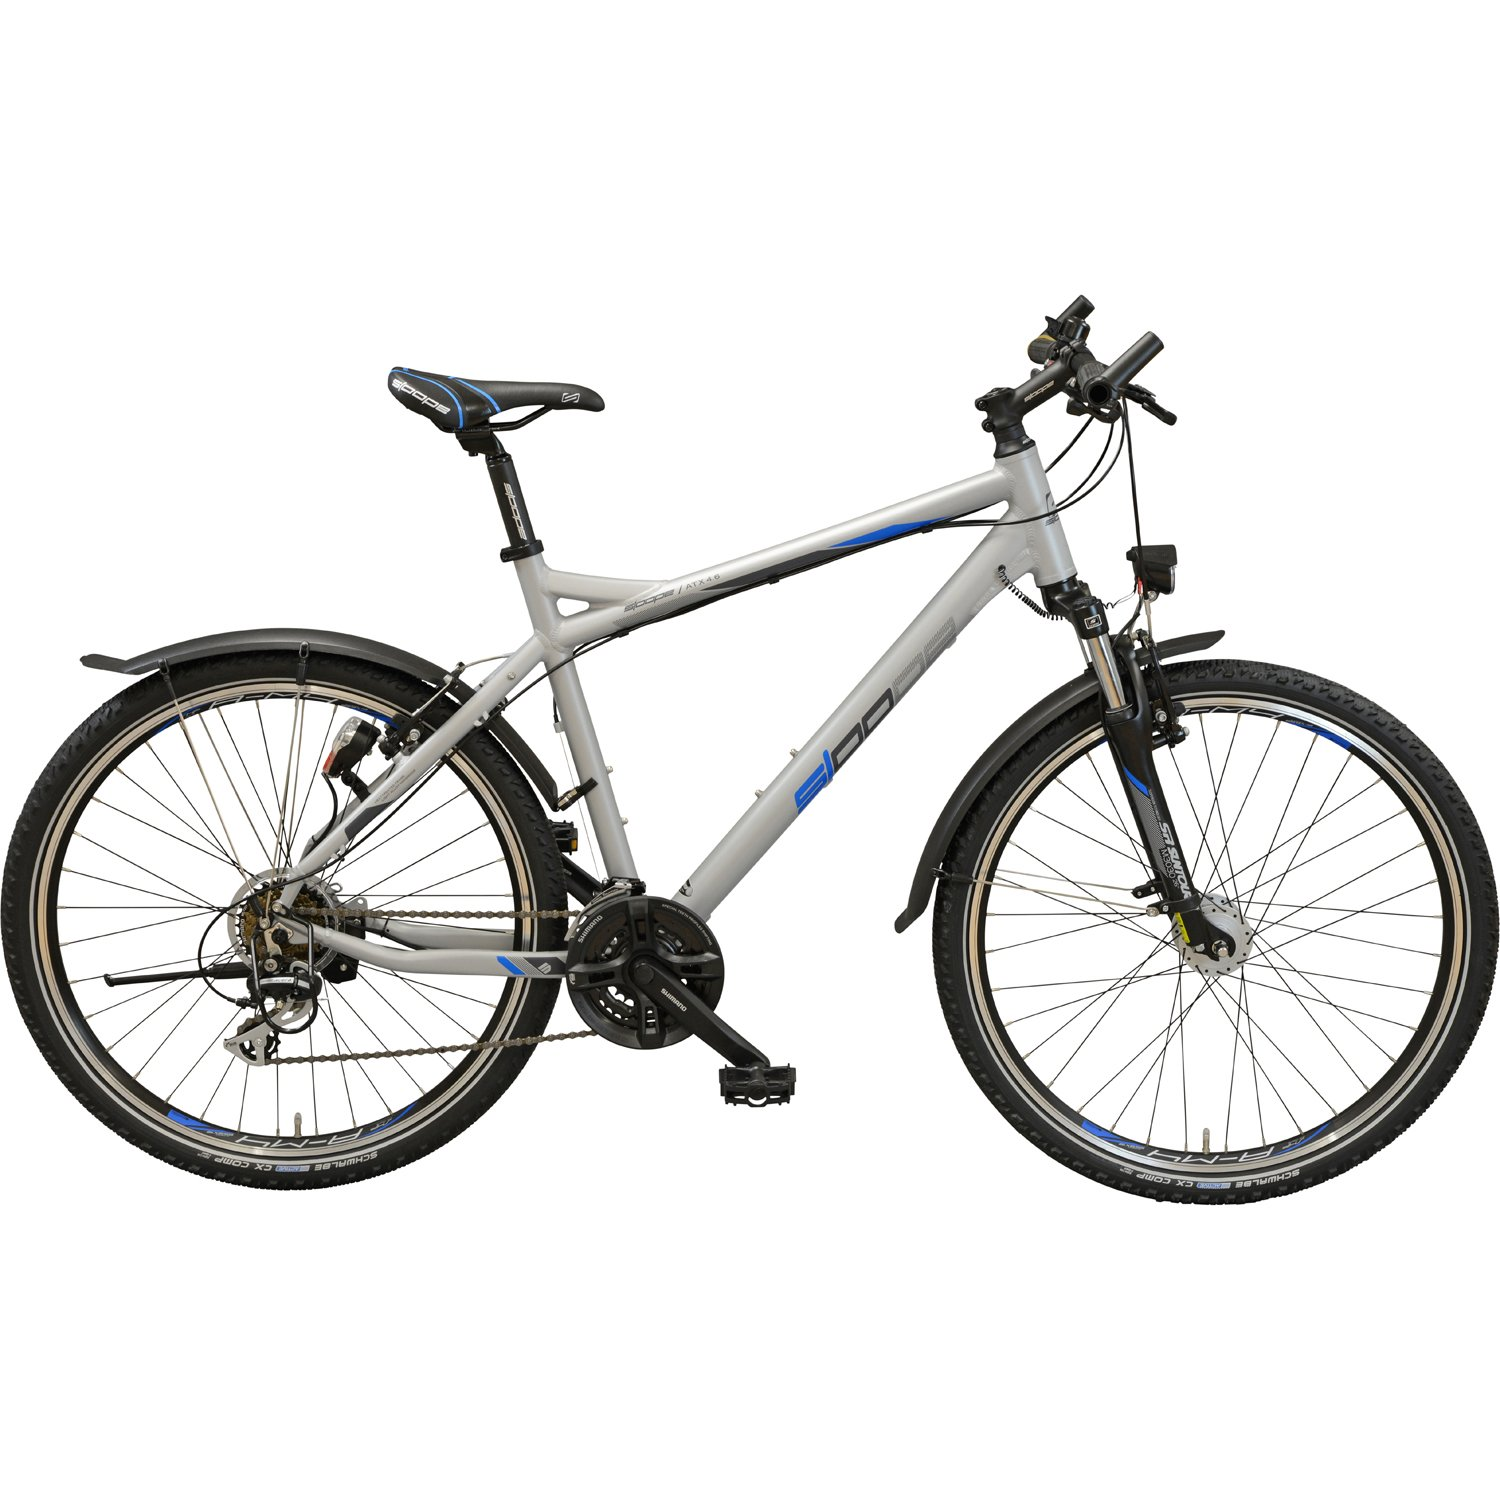 sloope atx 4 6 mountainbike 26 zoll hardtail 39 cm. Black Bedroom Furniture Sets. Home Design Ideas